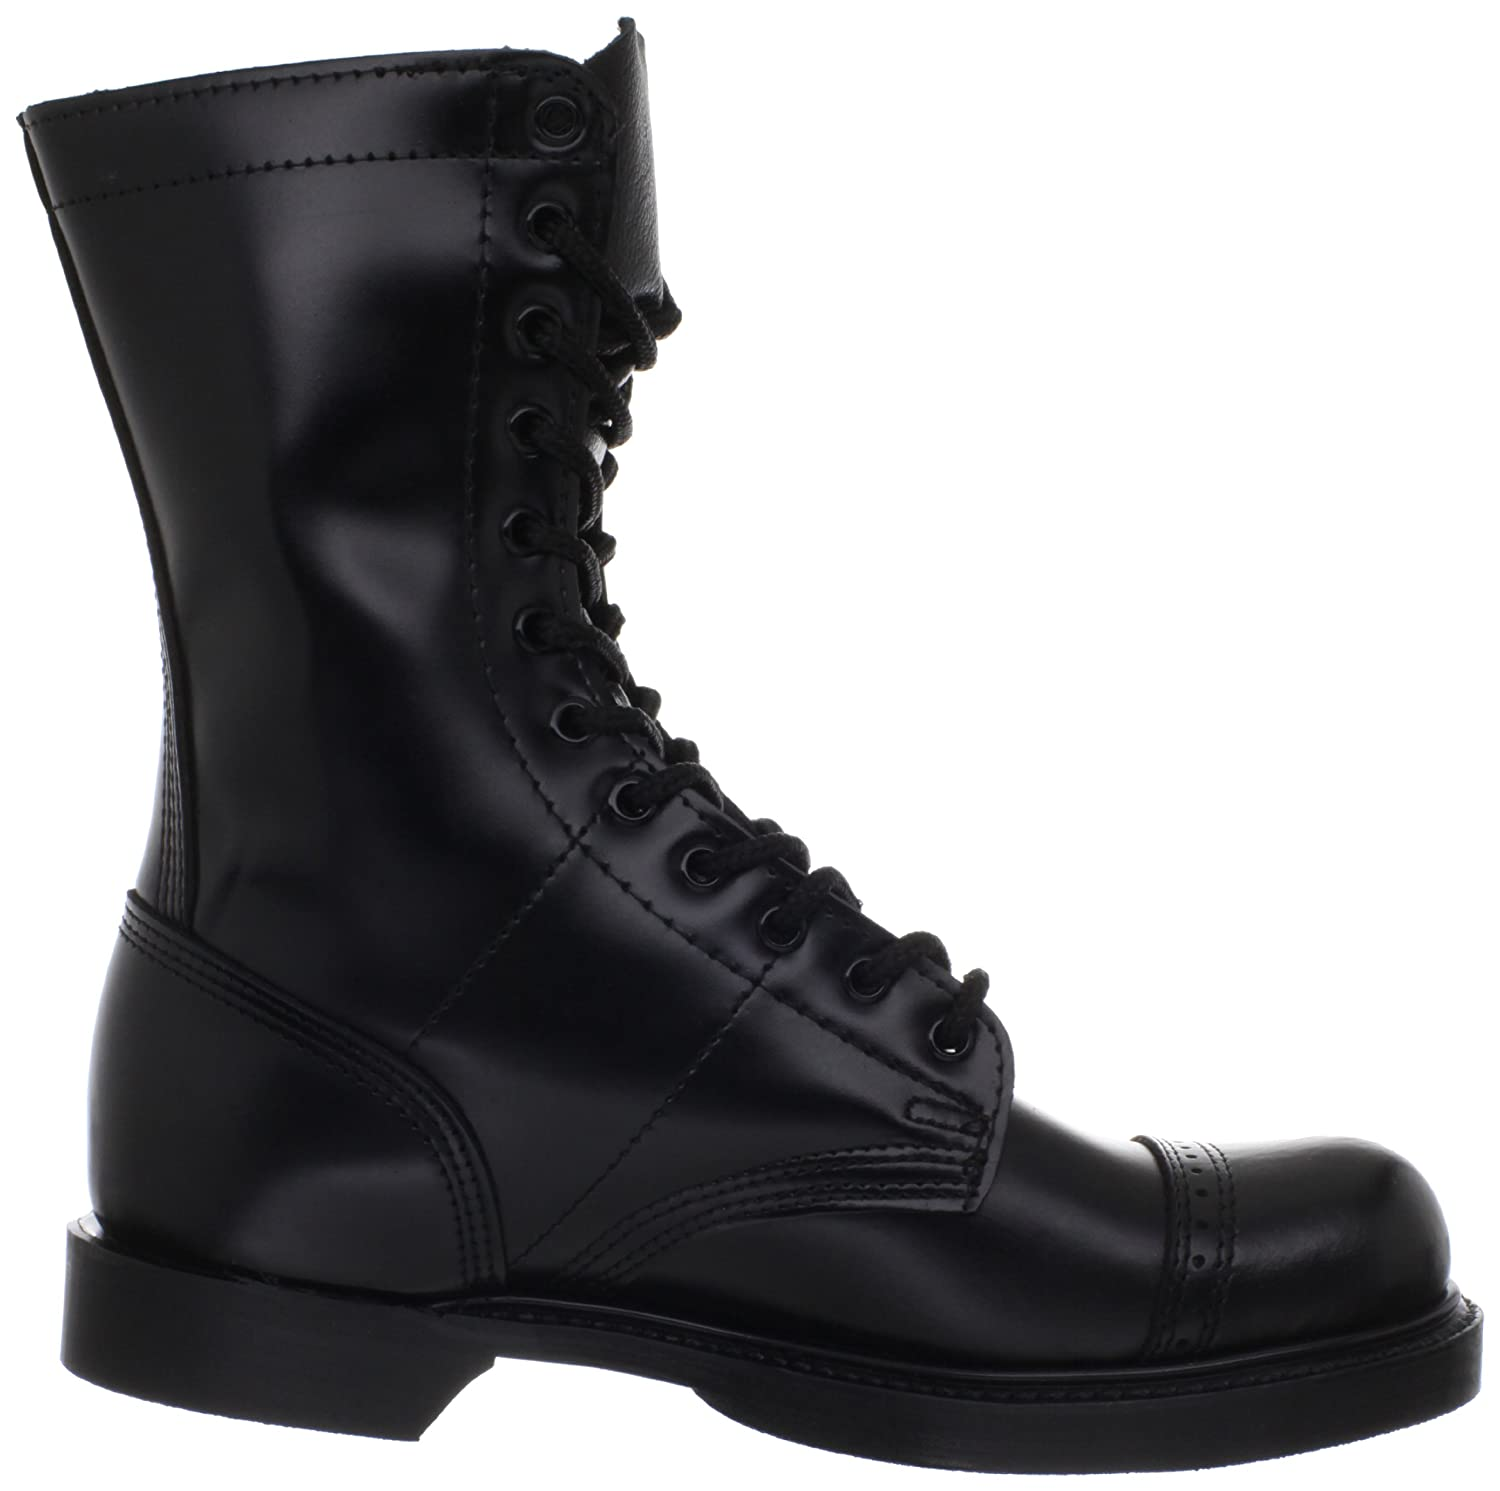 Size 10.5 E A Wide Selection Of Colours And Designs Original Corcoran Black Leather Jump Boots No Side Zipper